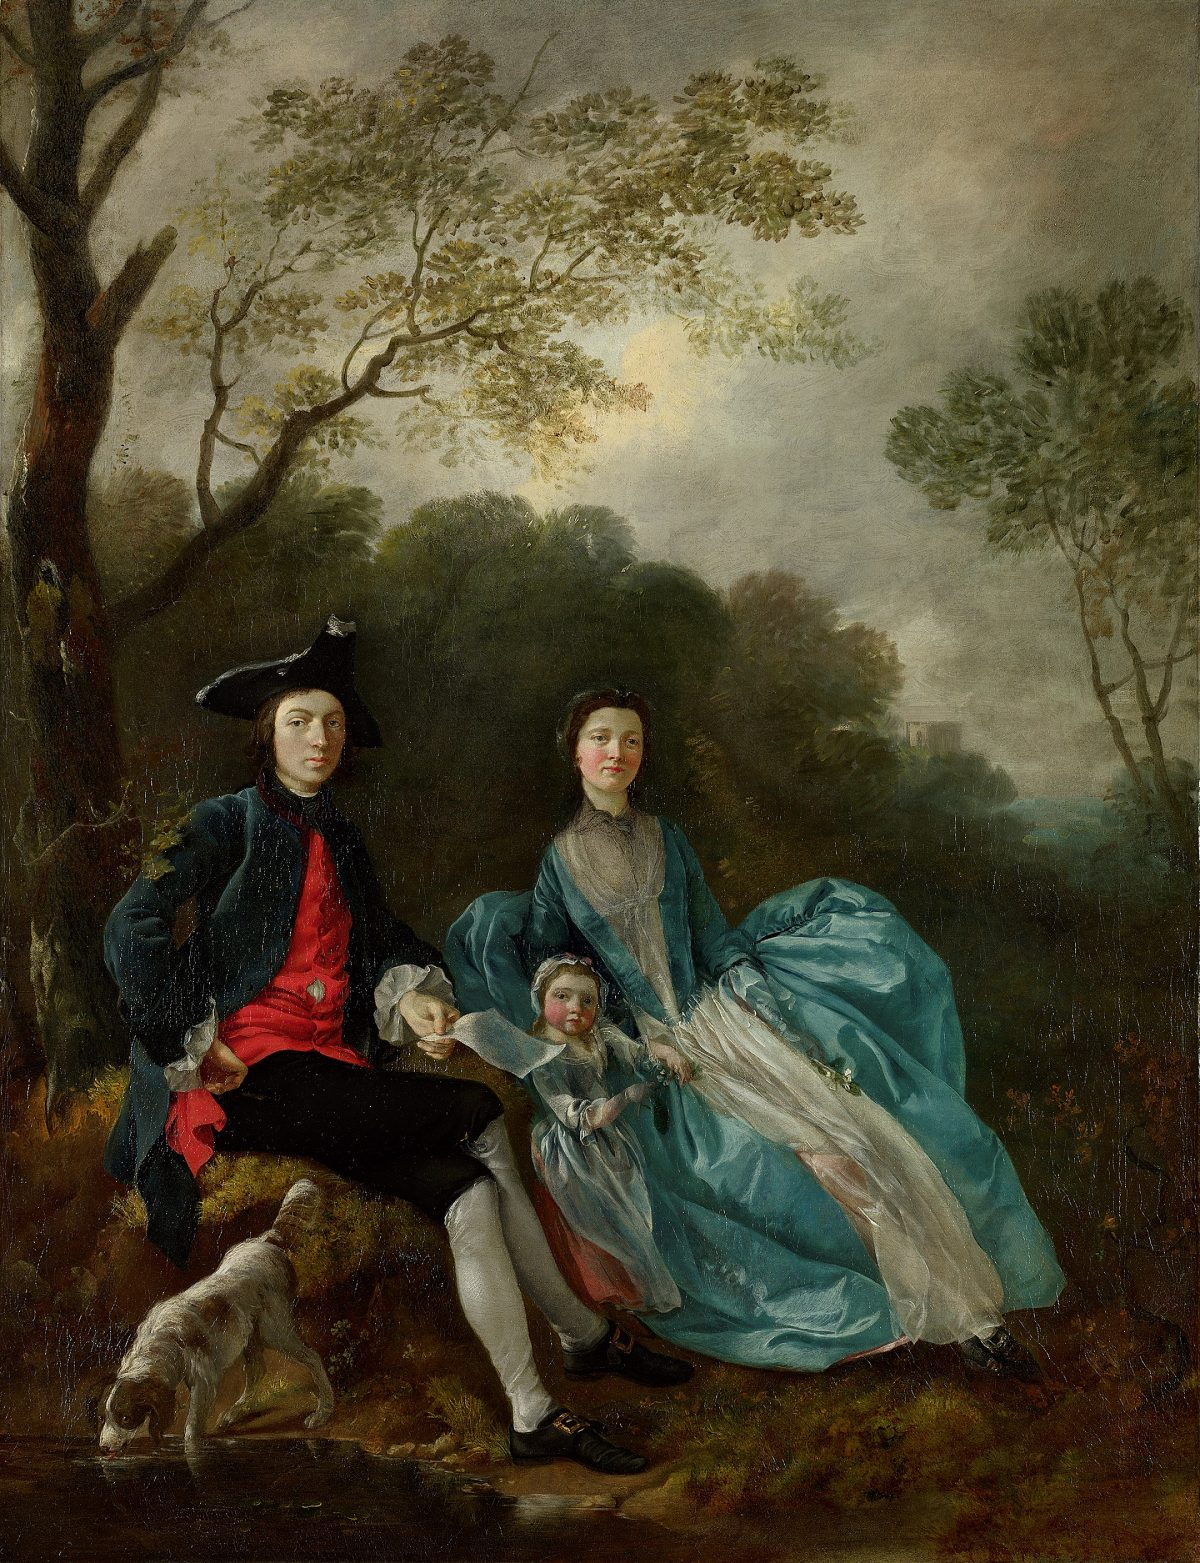 18th century man with wife and child